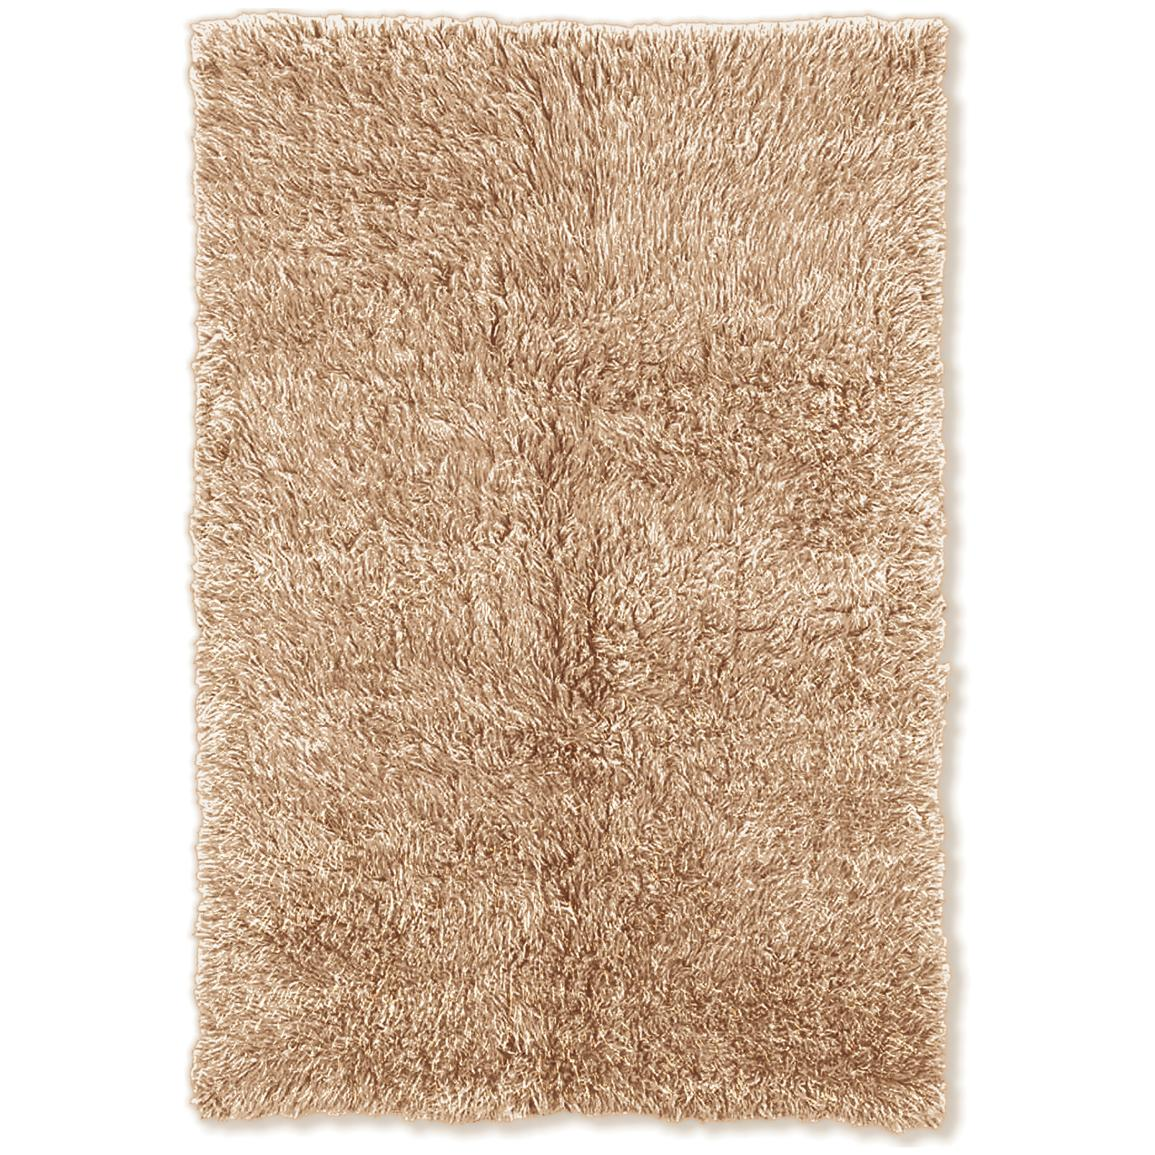 Linon Home Decor, Inc. Flokati Collection Rug, Tan